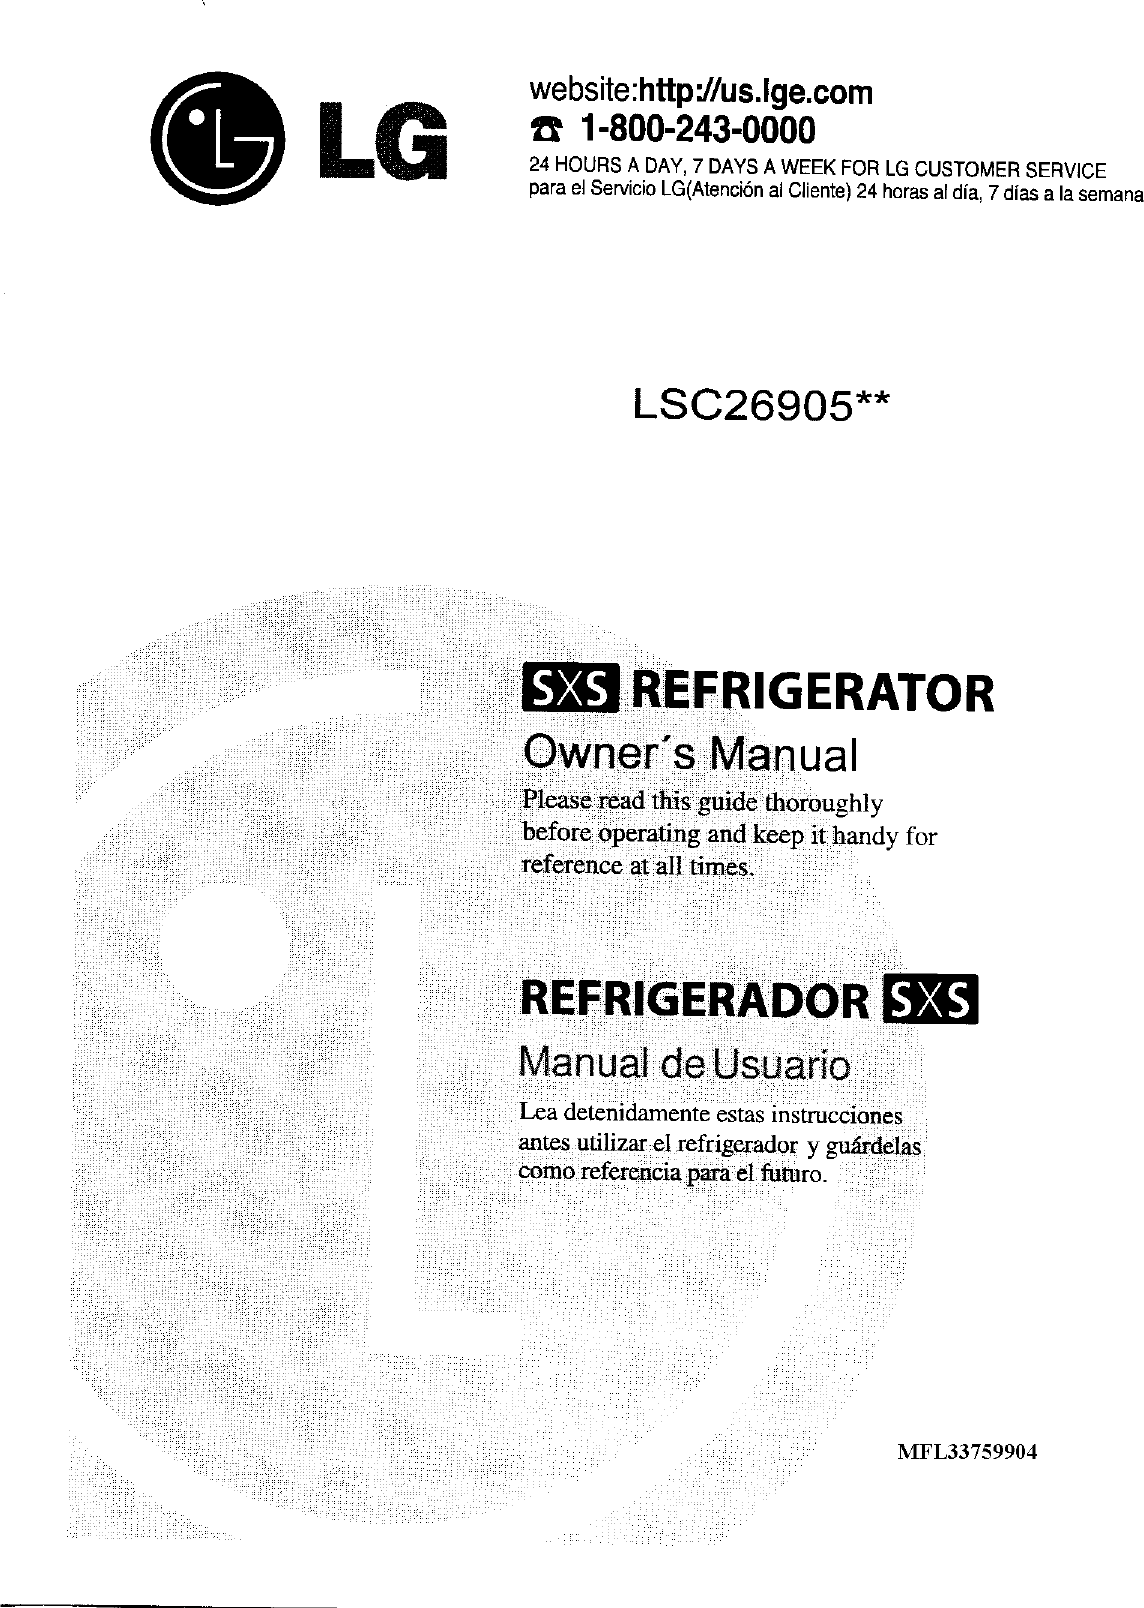 Lg Lsc26905sb User Manual Refrigerator Manuals And Guides Lr708065 Refrigerators Fuse Box